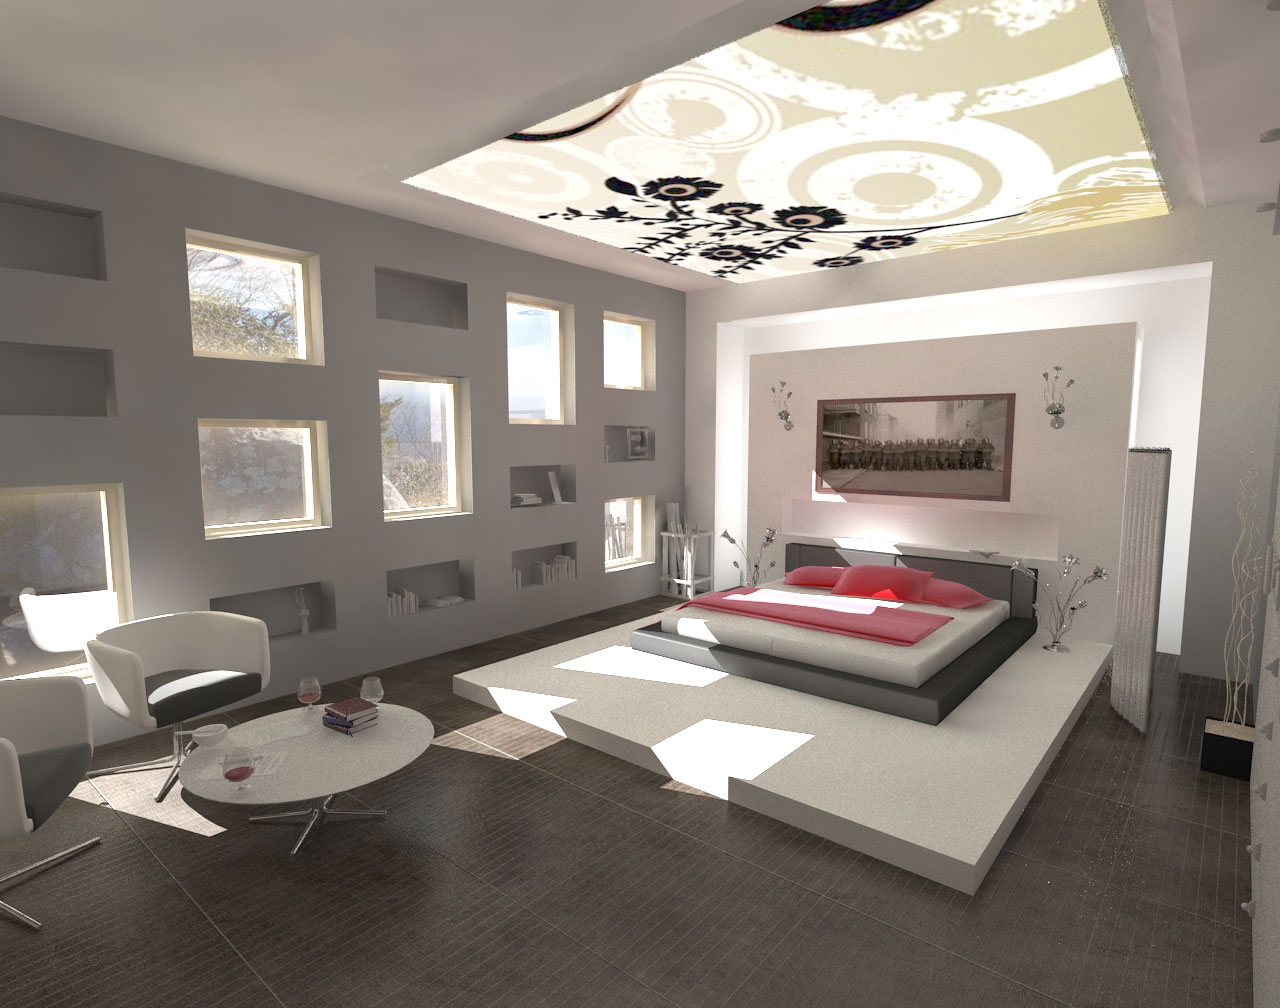 Exclusive interior bedroom ideas home design ideas and alternative - Interior bedroom design ...